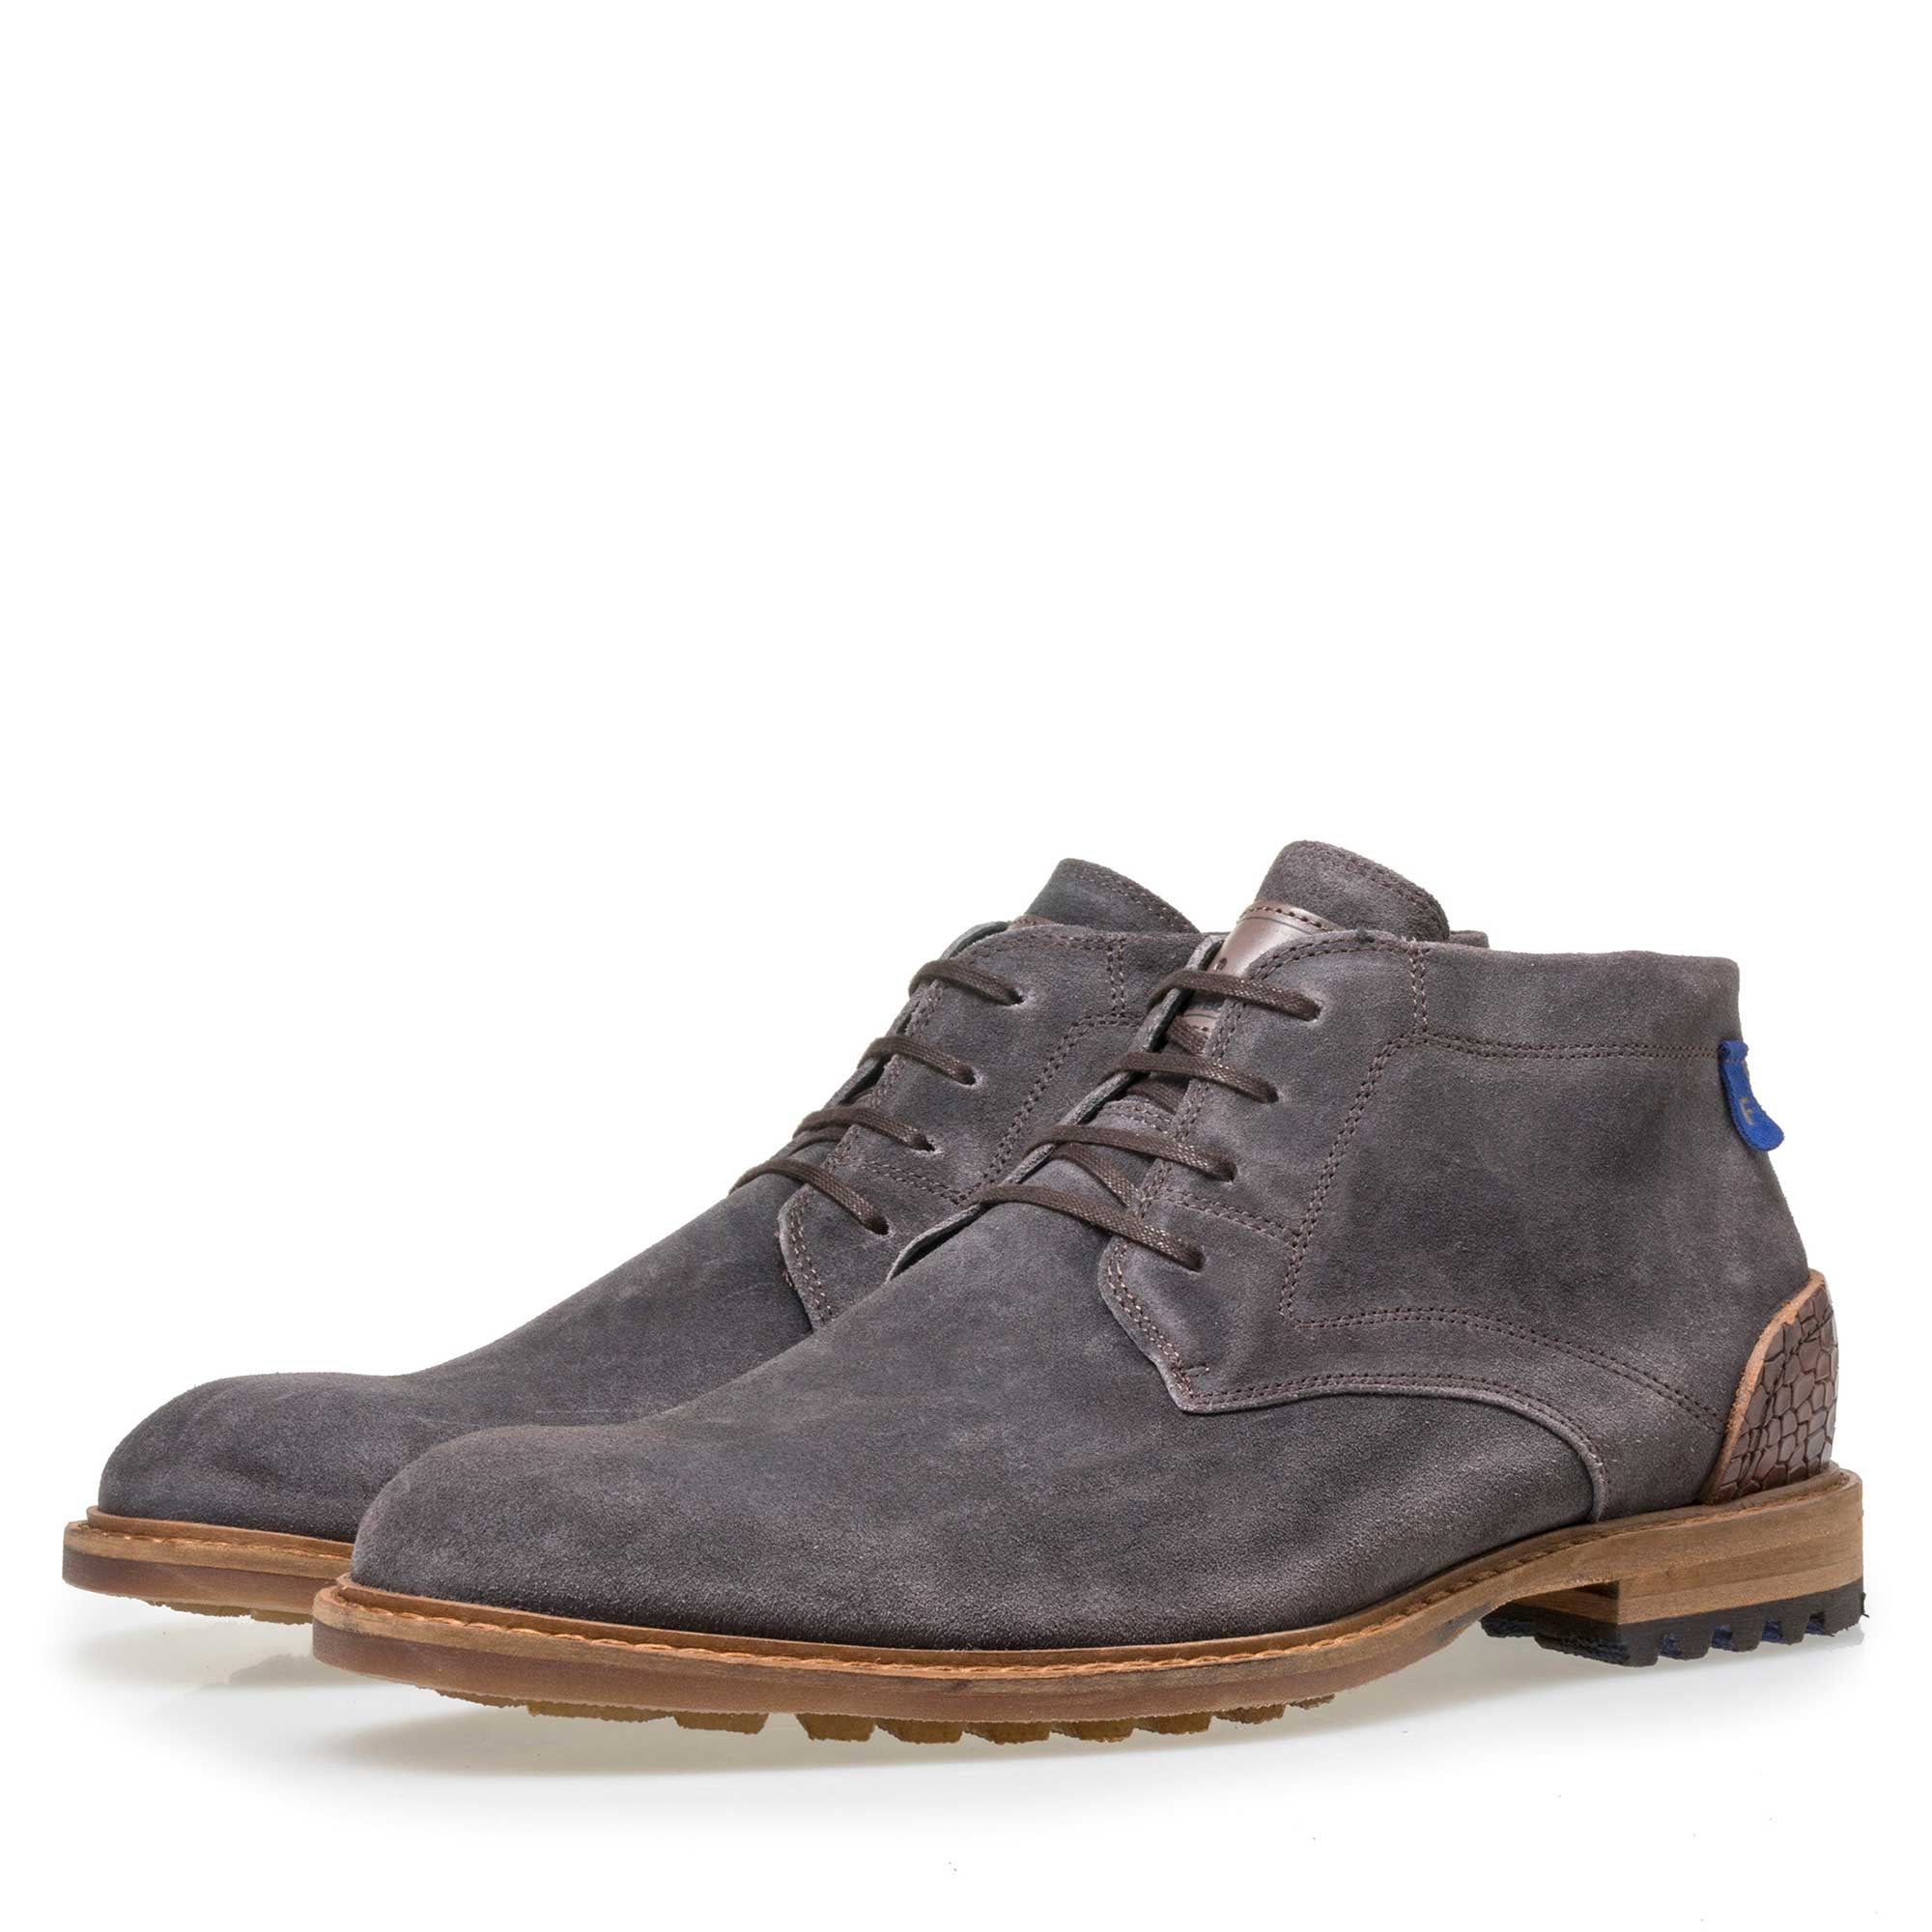 10907/04 - Floris van Bommel men's grey suede leather lace boot